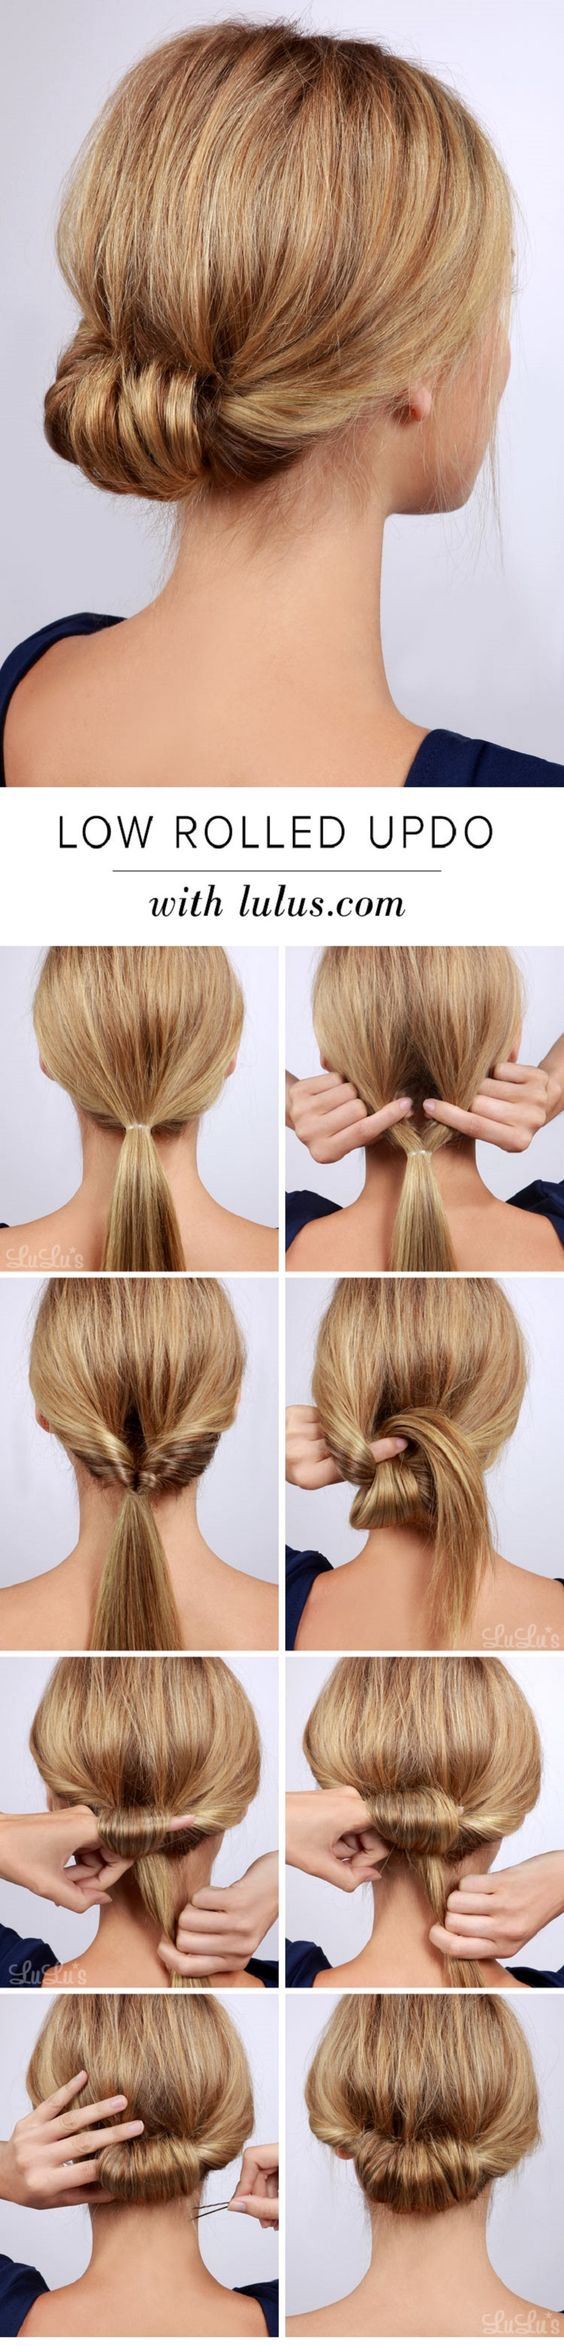 Low Rolled Updo Hair Tutorial - 15 Best Beauty Tutorials for Winter 2014-2015 | GleamItUp: